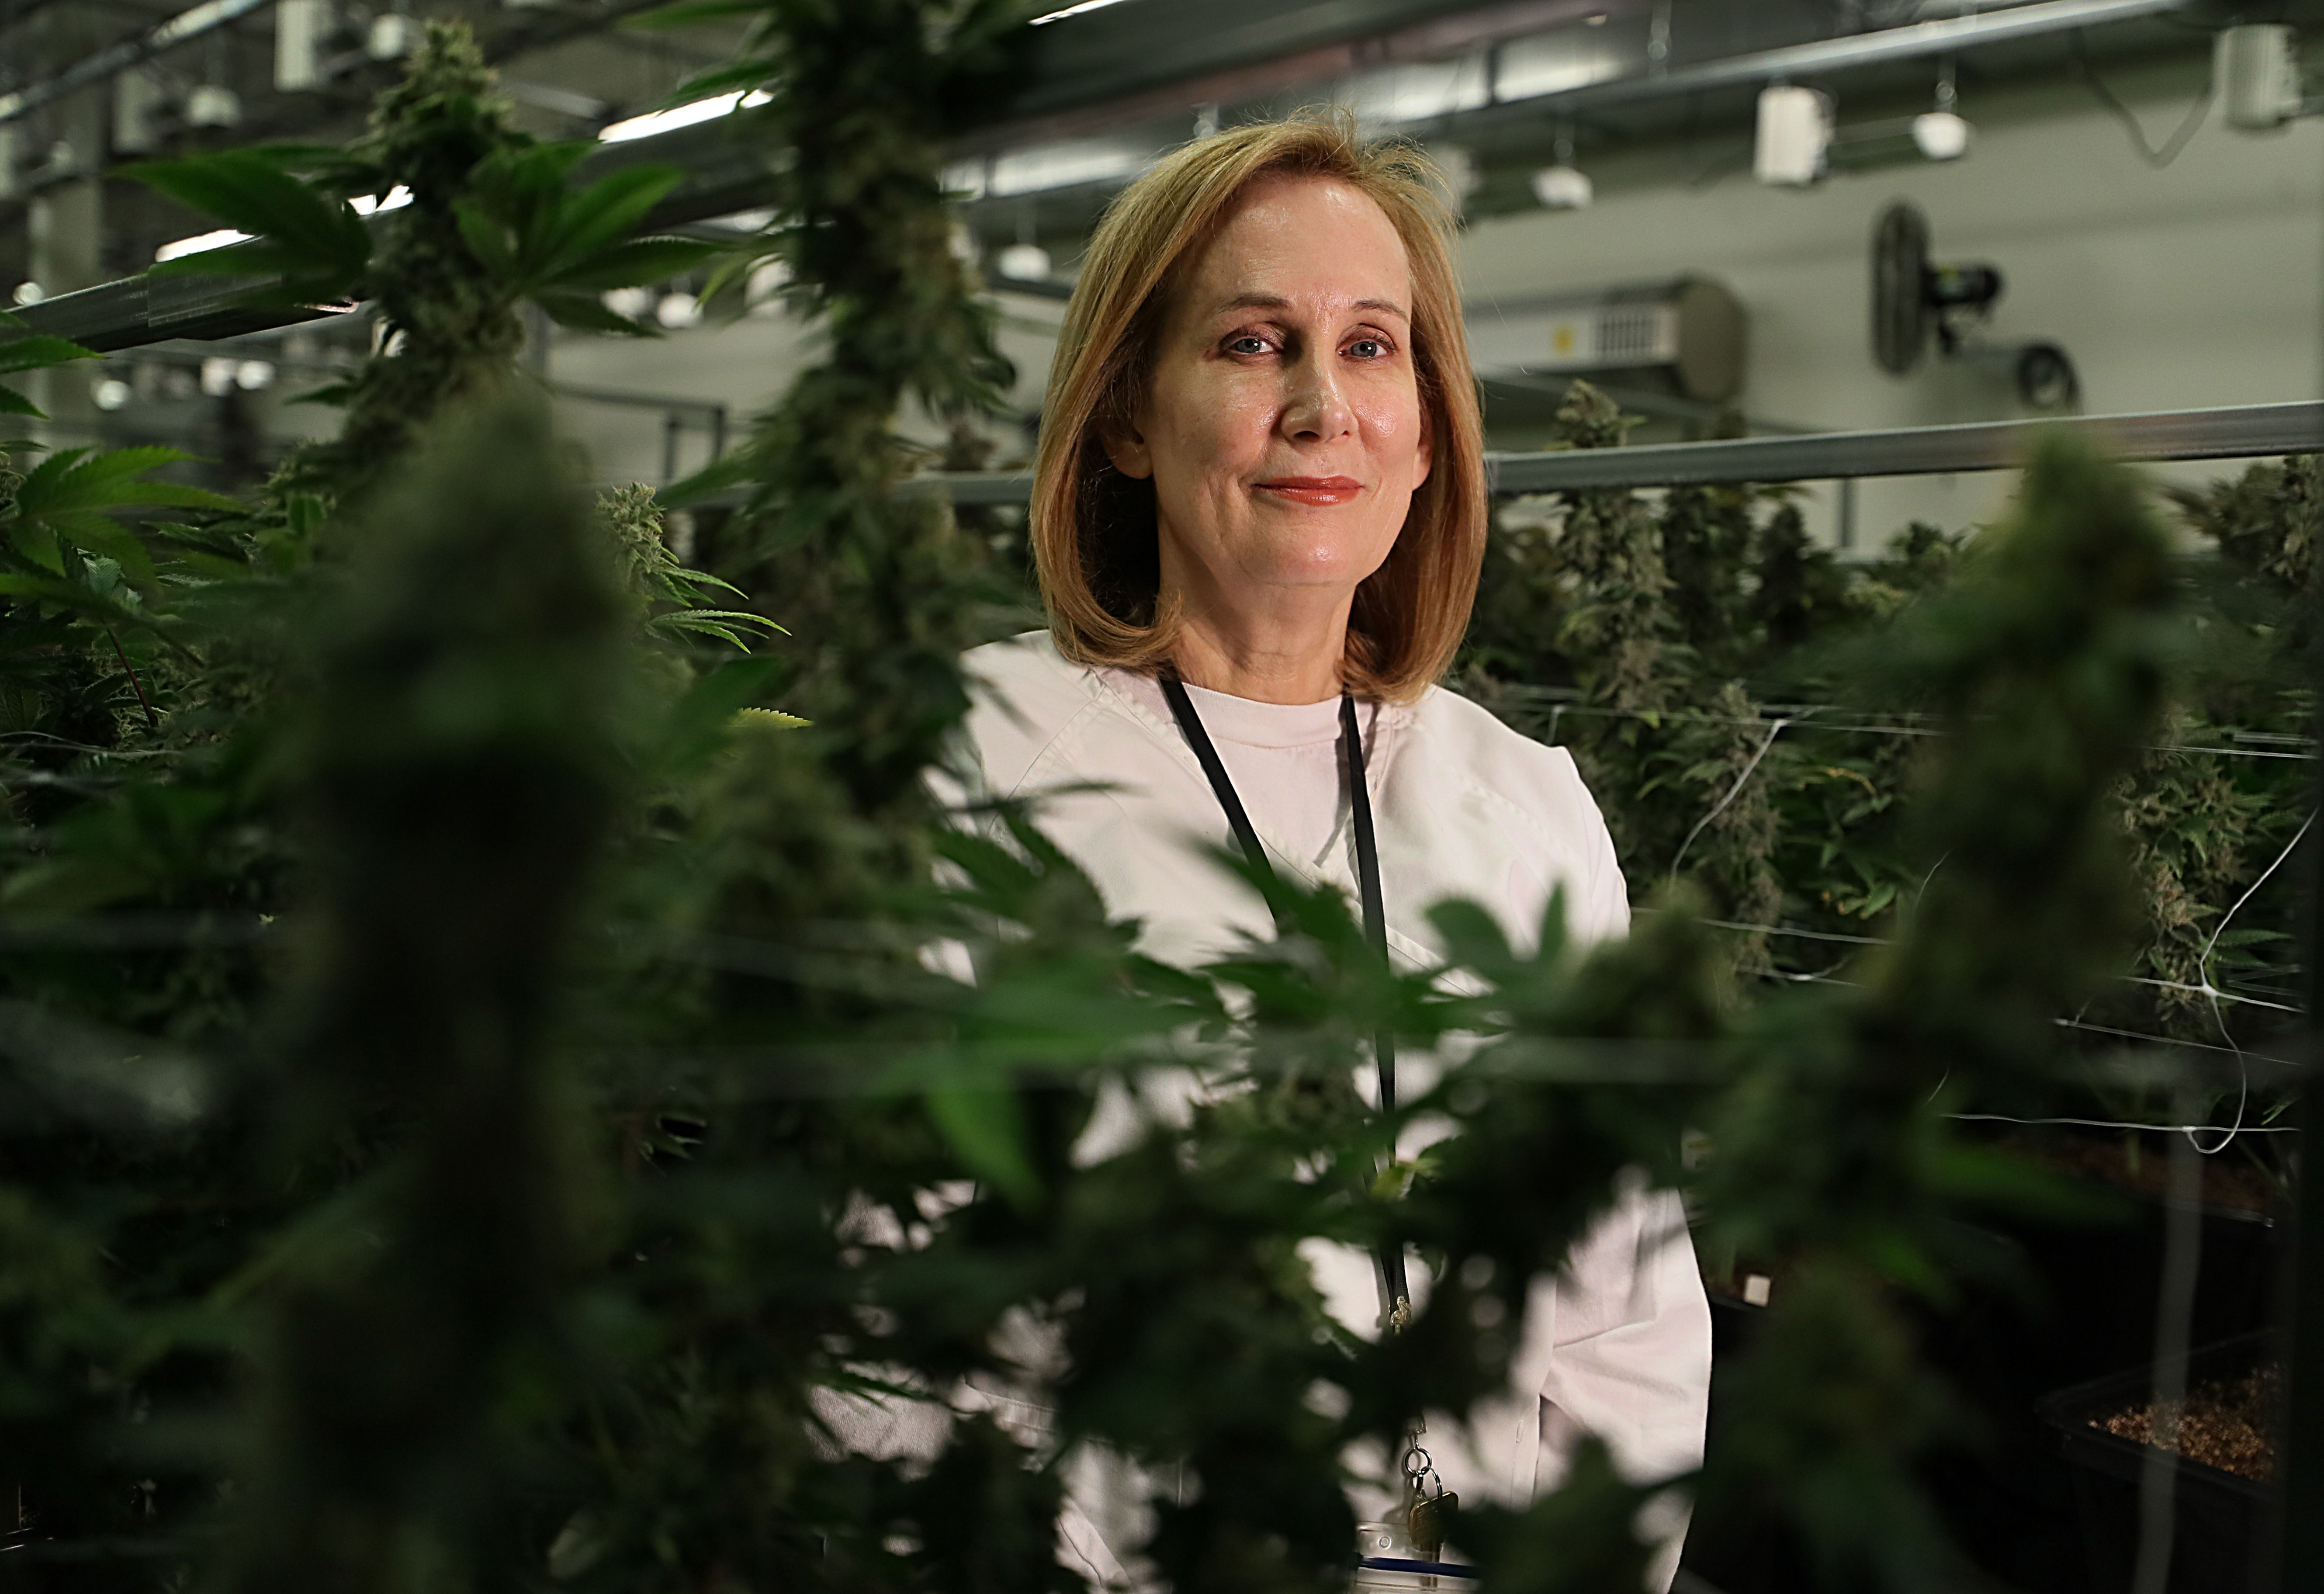 For Physician Cancer Battle Inspired Cannabis Company The